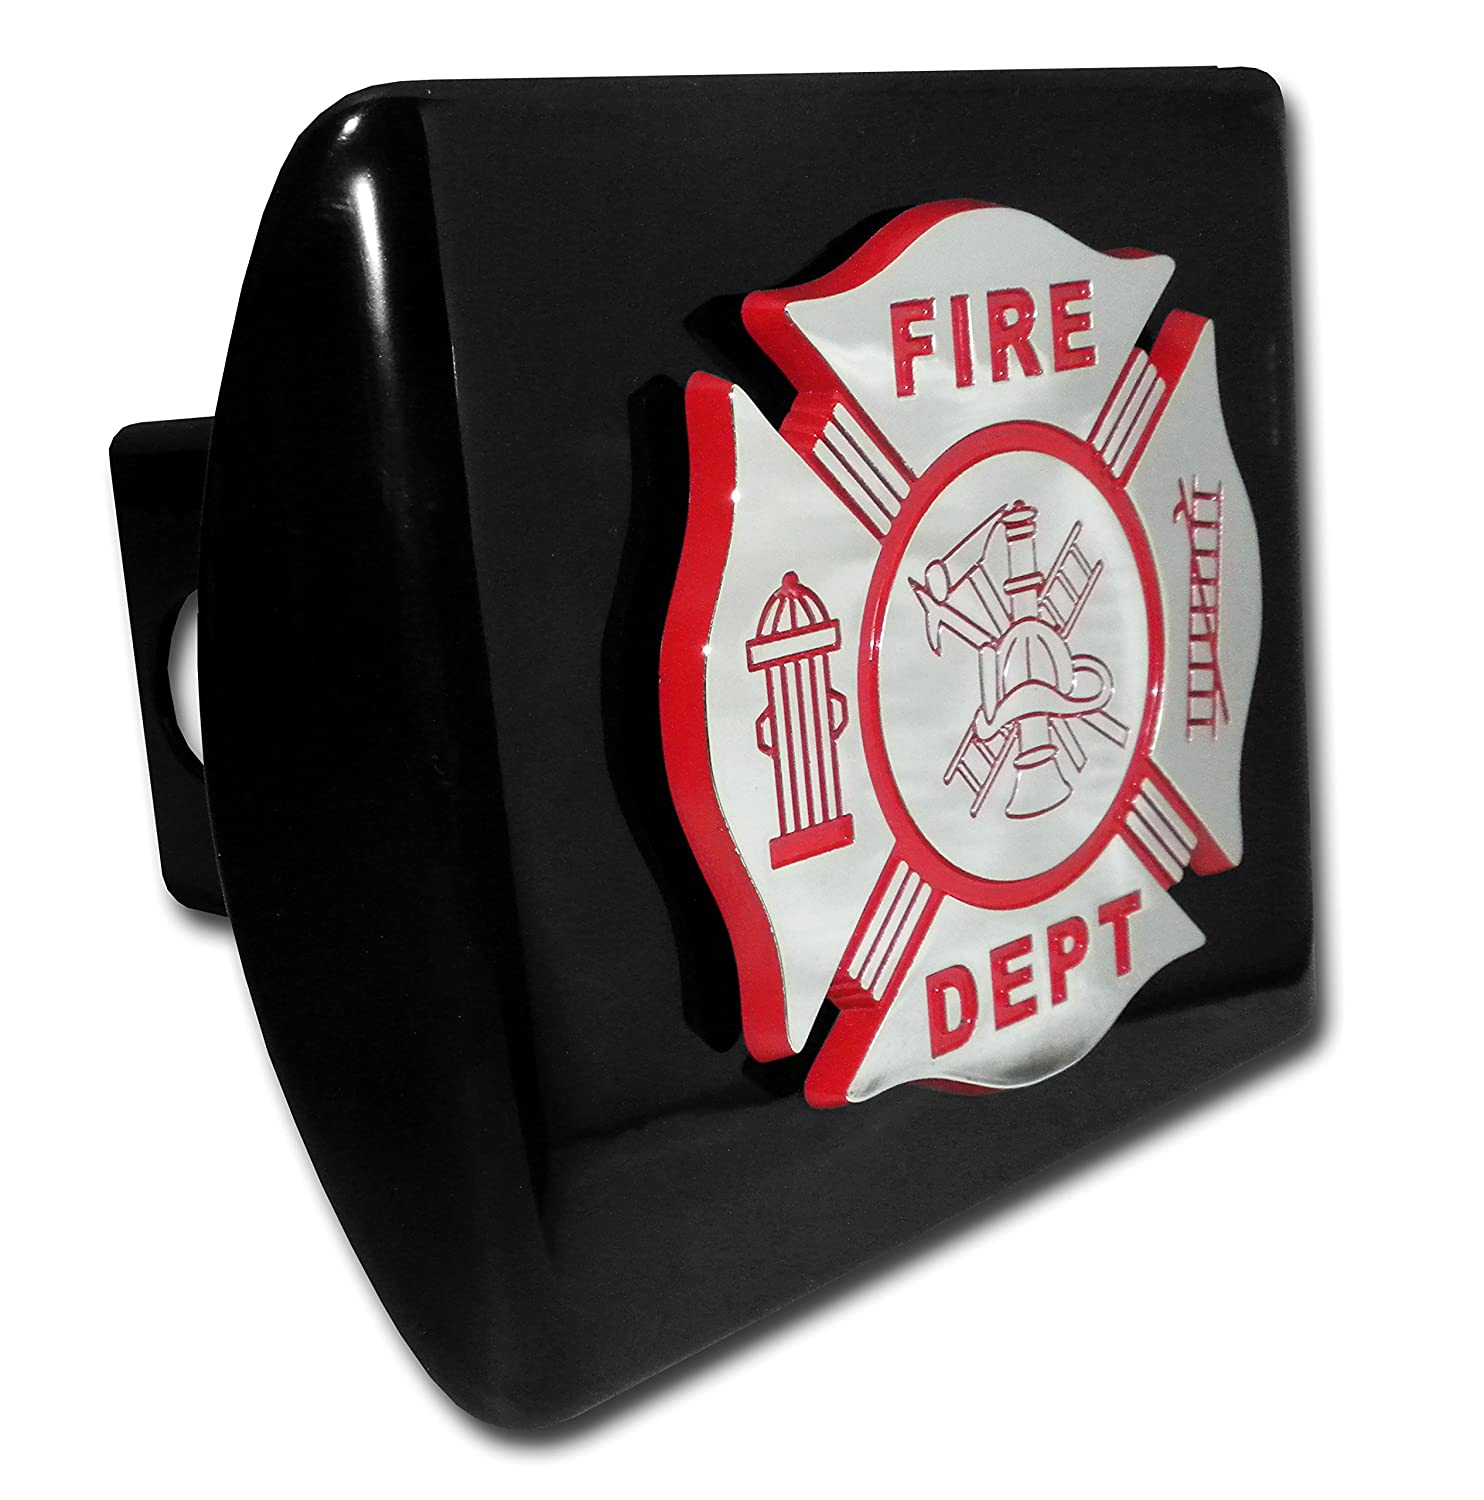 Elektroplate Firefighter (Red and Chrome emblem) on Black Metal Hitch Cover FIRE-RED-BLK-HC